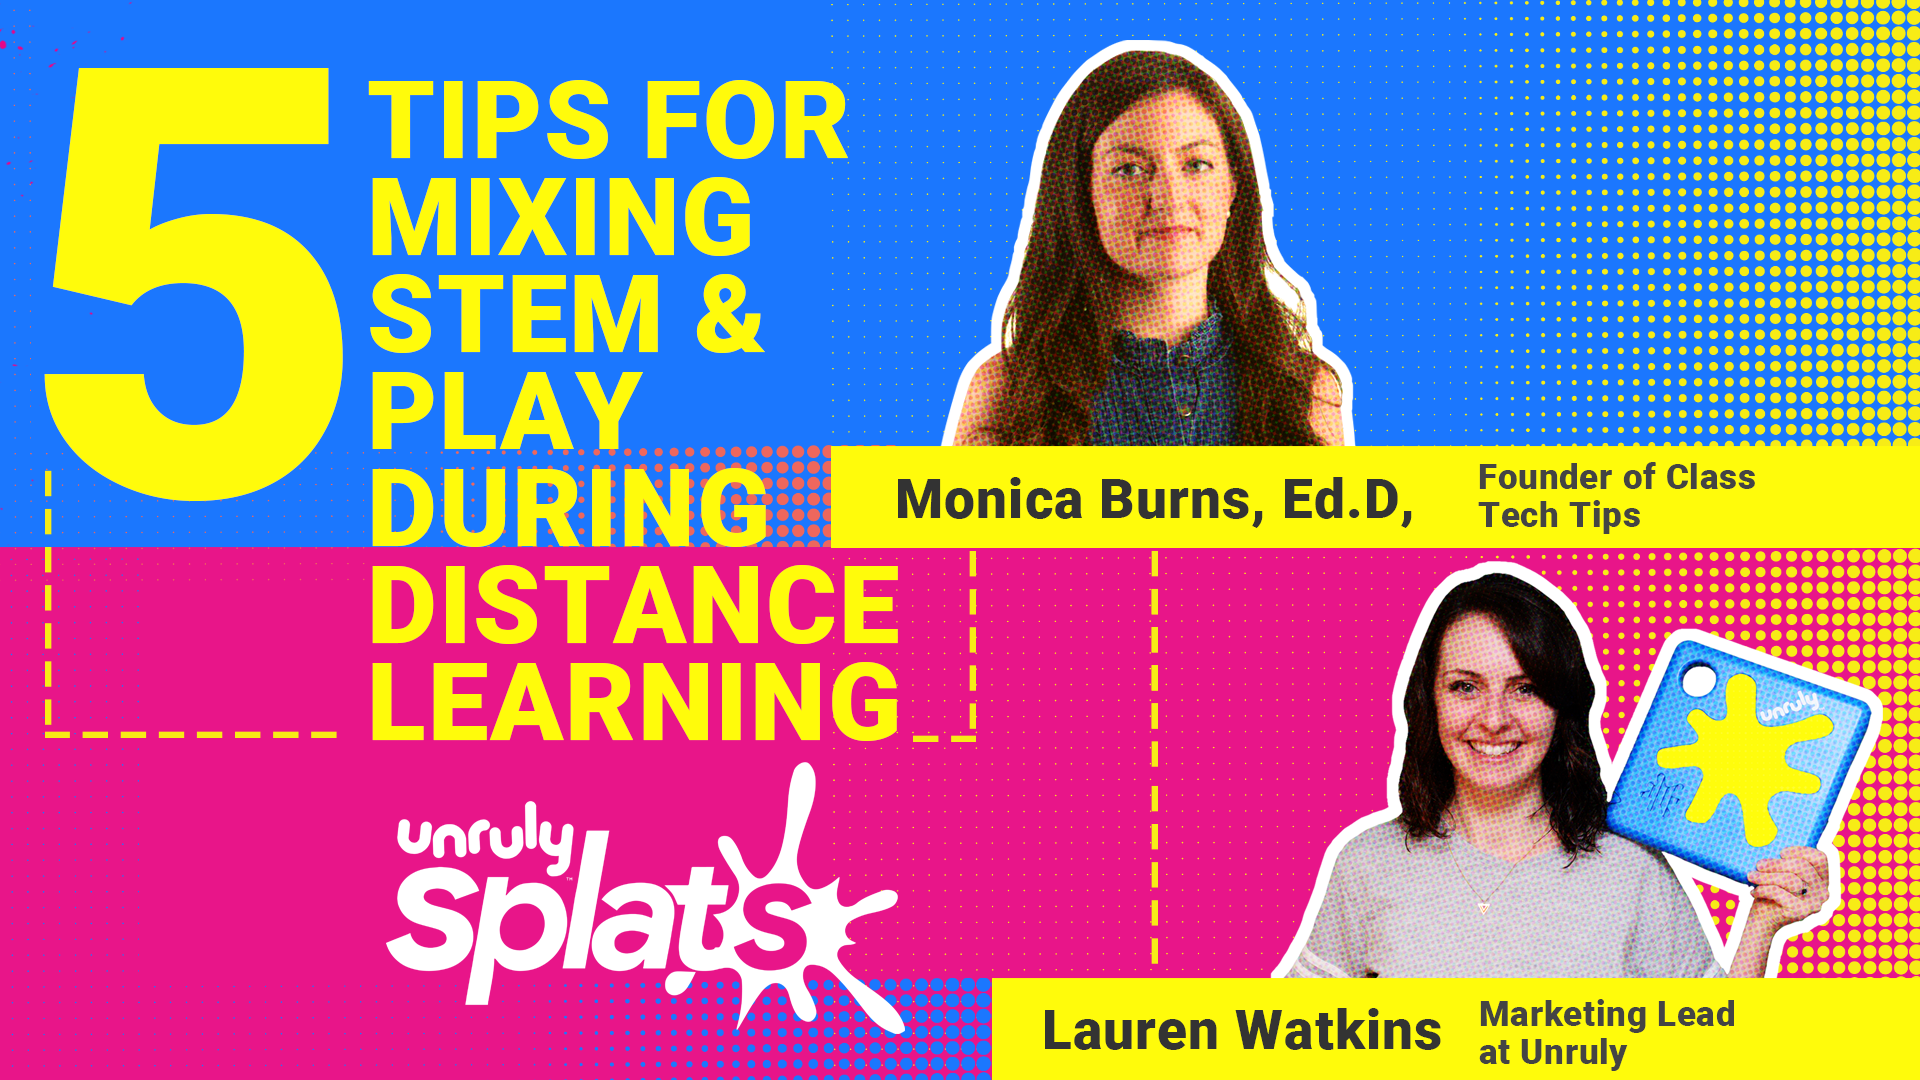 Tips for Mixing STEM and Play During Distance Learning